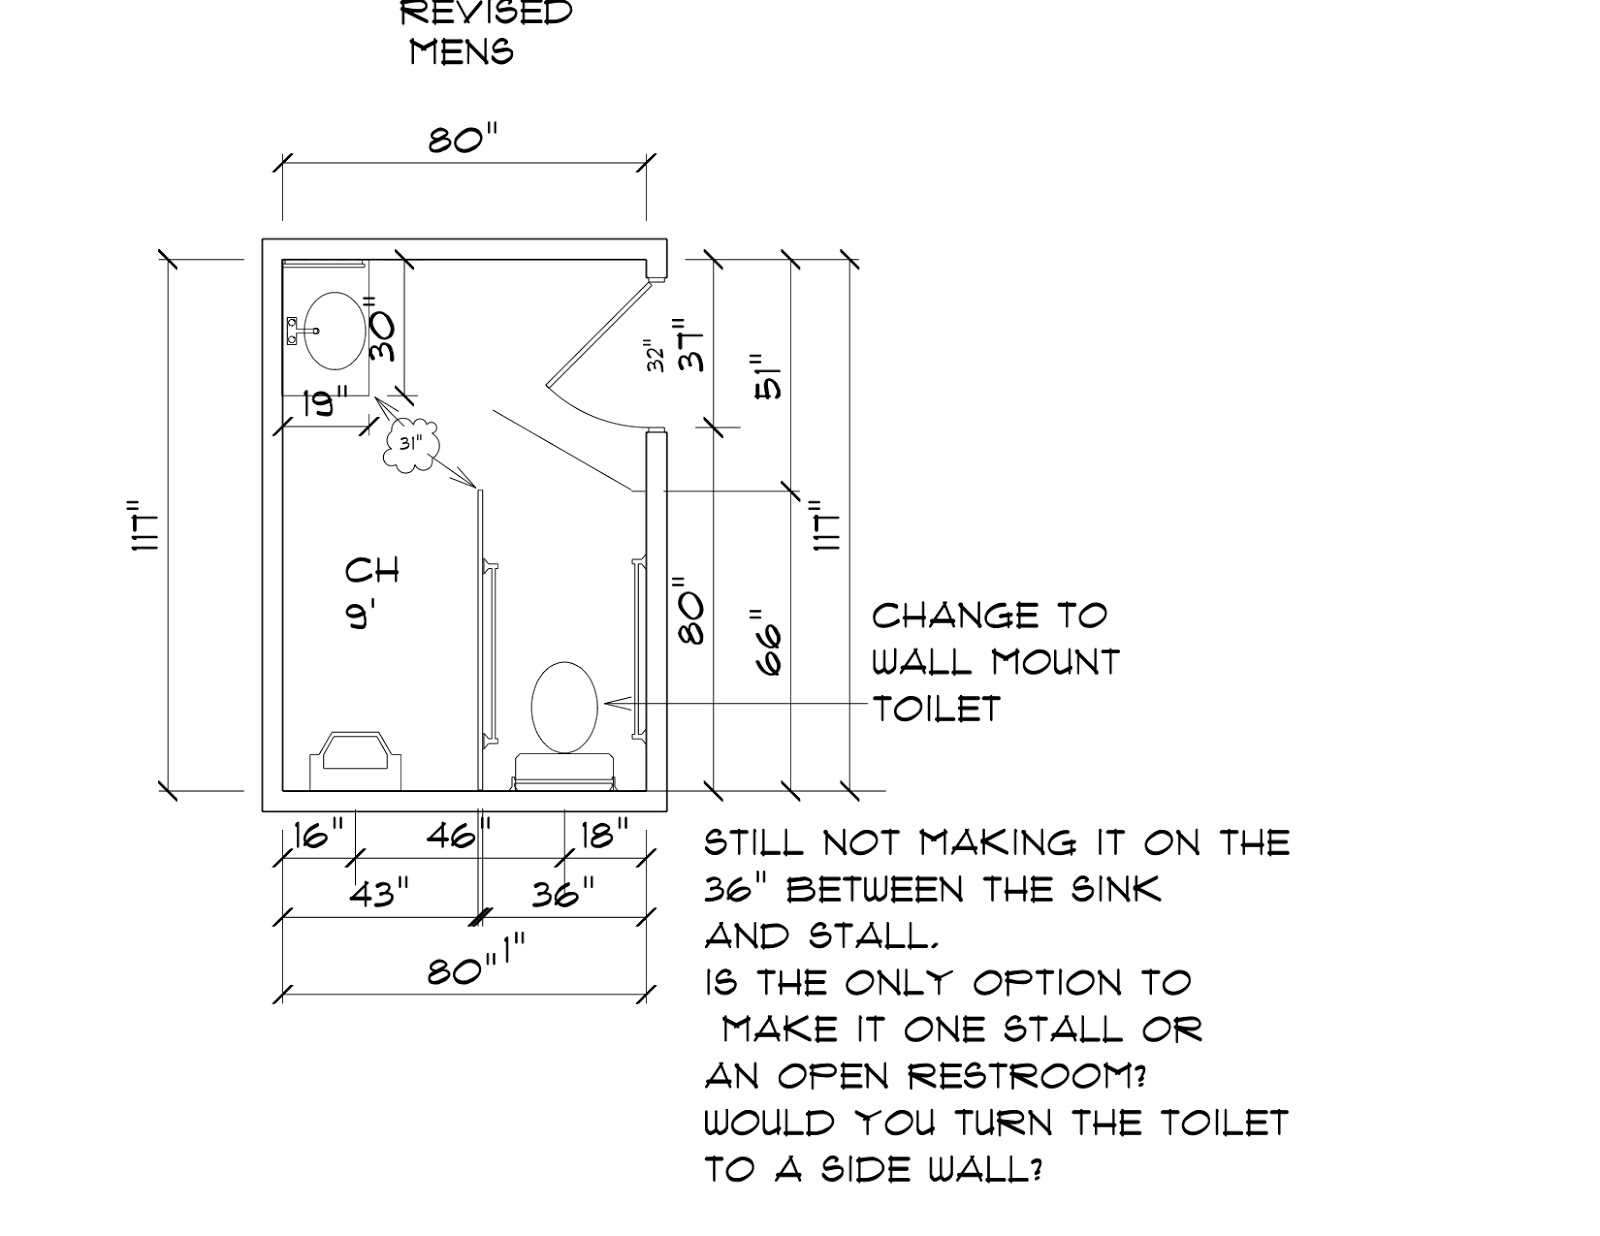 Bathroom dimensions minimum - It Is My Understanding That You Don T Need An Accessible Urinal If The Bathroom Stall Is Accessible But As With Everything Else The Ada Regulations Are Open